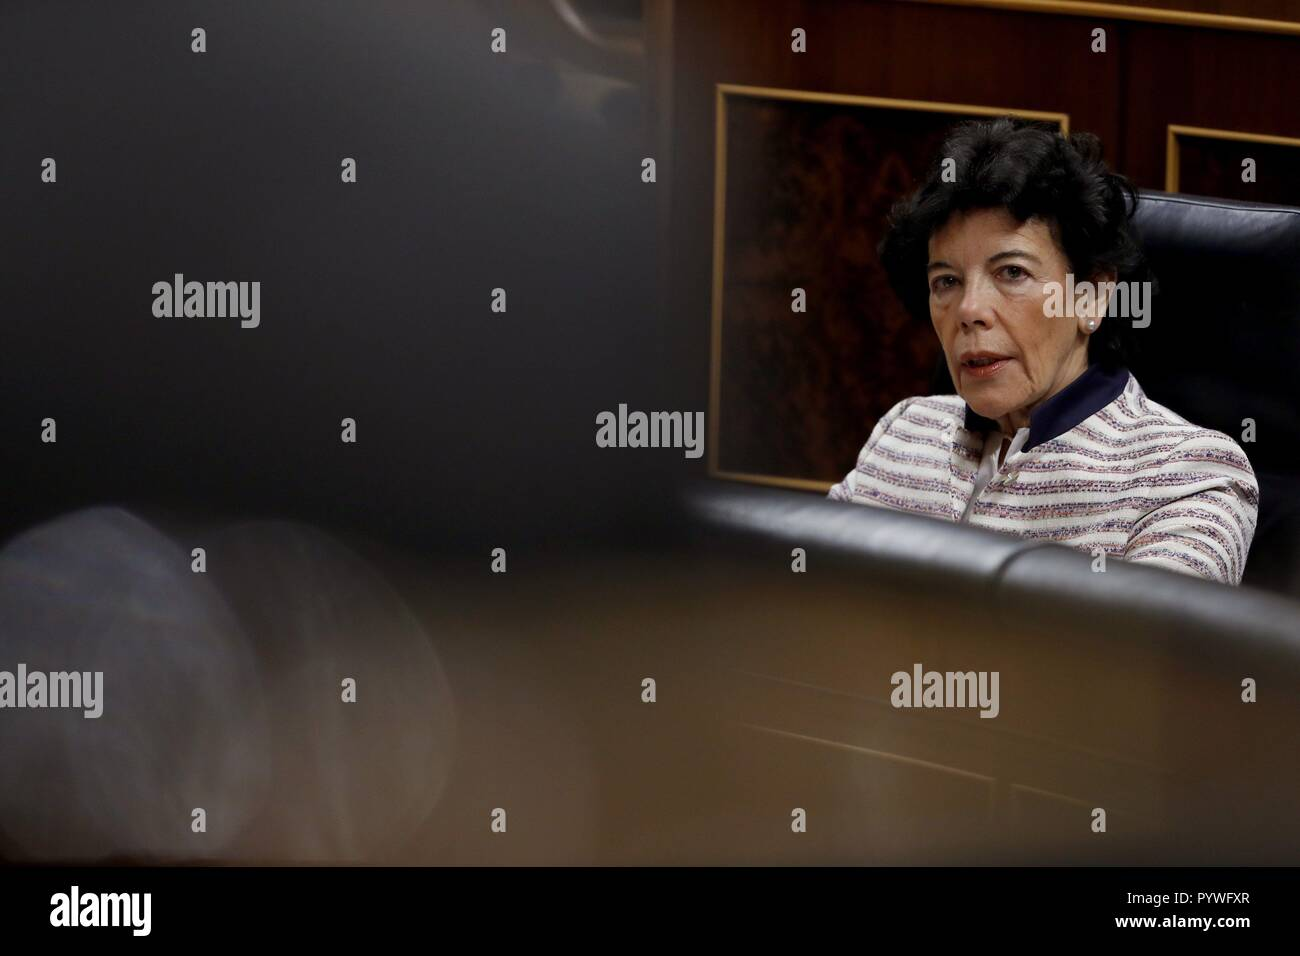 Madrid, Spain. 31st Oct, 2018. Spanish Education Minister, Isabel Celaa, attends question time at Parliament in Madrid, Spain, 31 October 2018. Credit: Javier Lizon/EFE/Alamy Live News - Stock Image